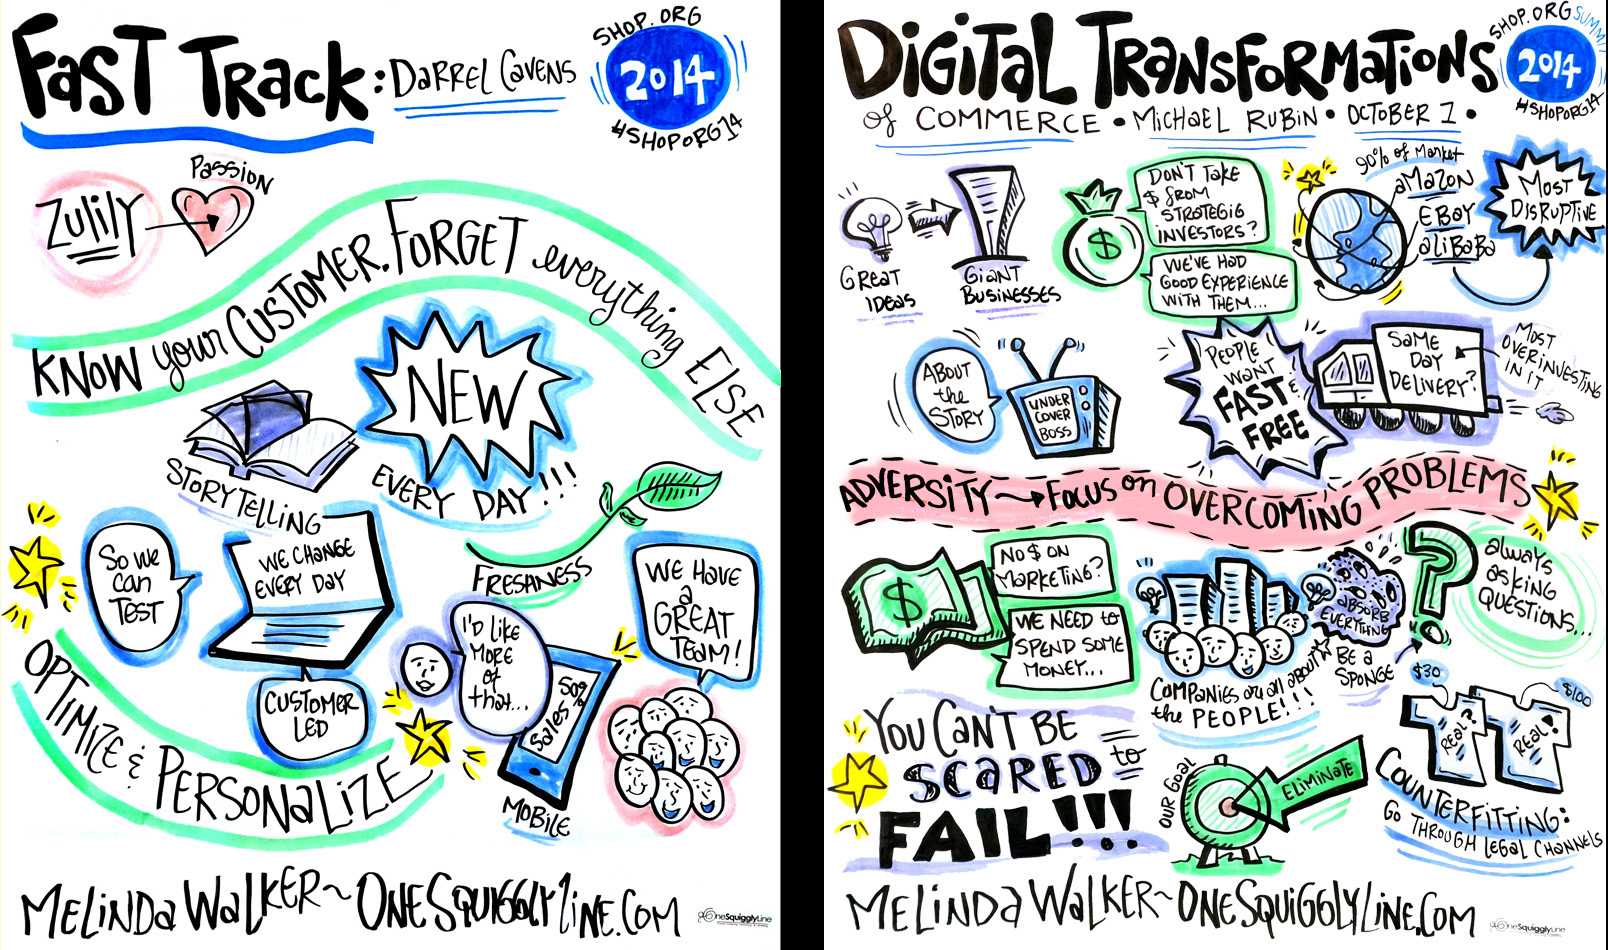 Shop.Org Summit Graphic Recording Melinda Walker One Squiggly Line